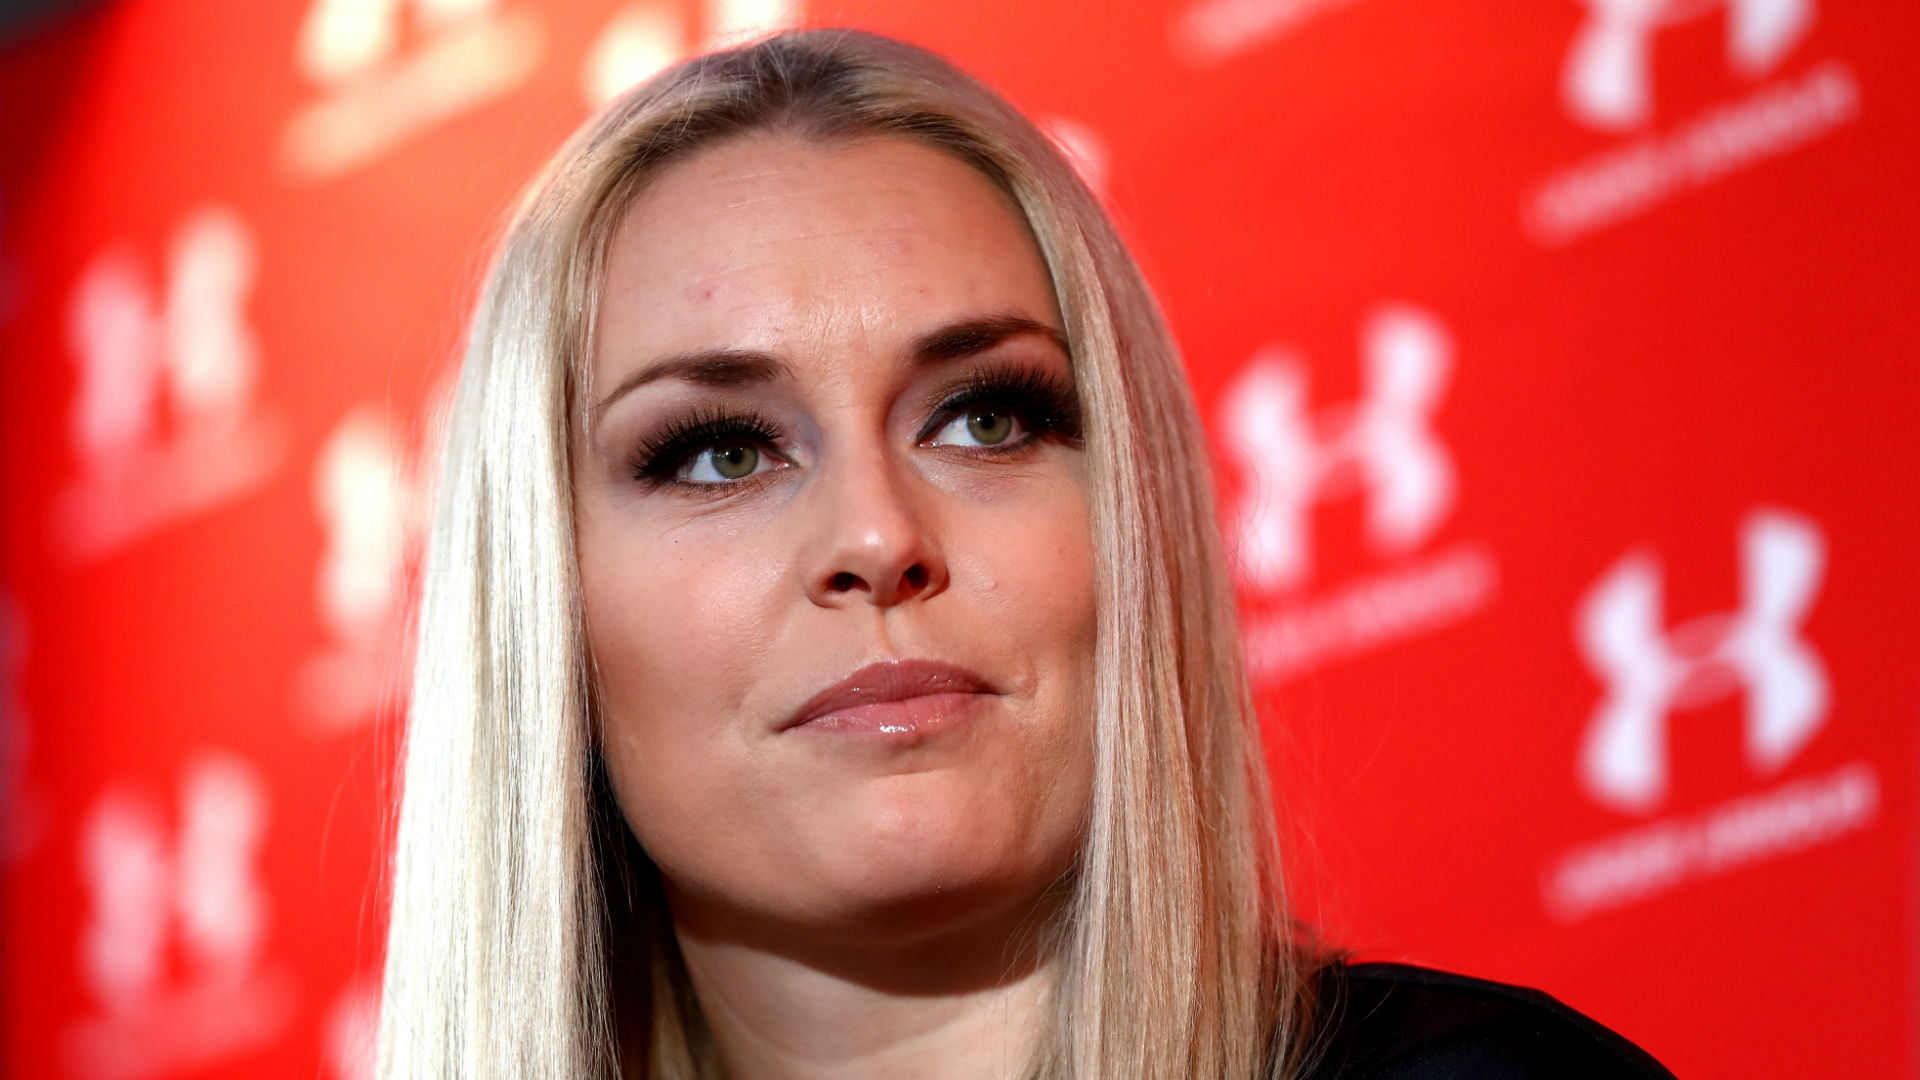 Lindsey Vonn: Lindsey Vonn Fires Back At Troll Who Thought She Was Out